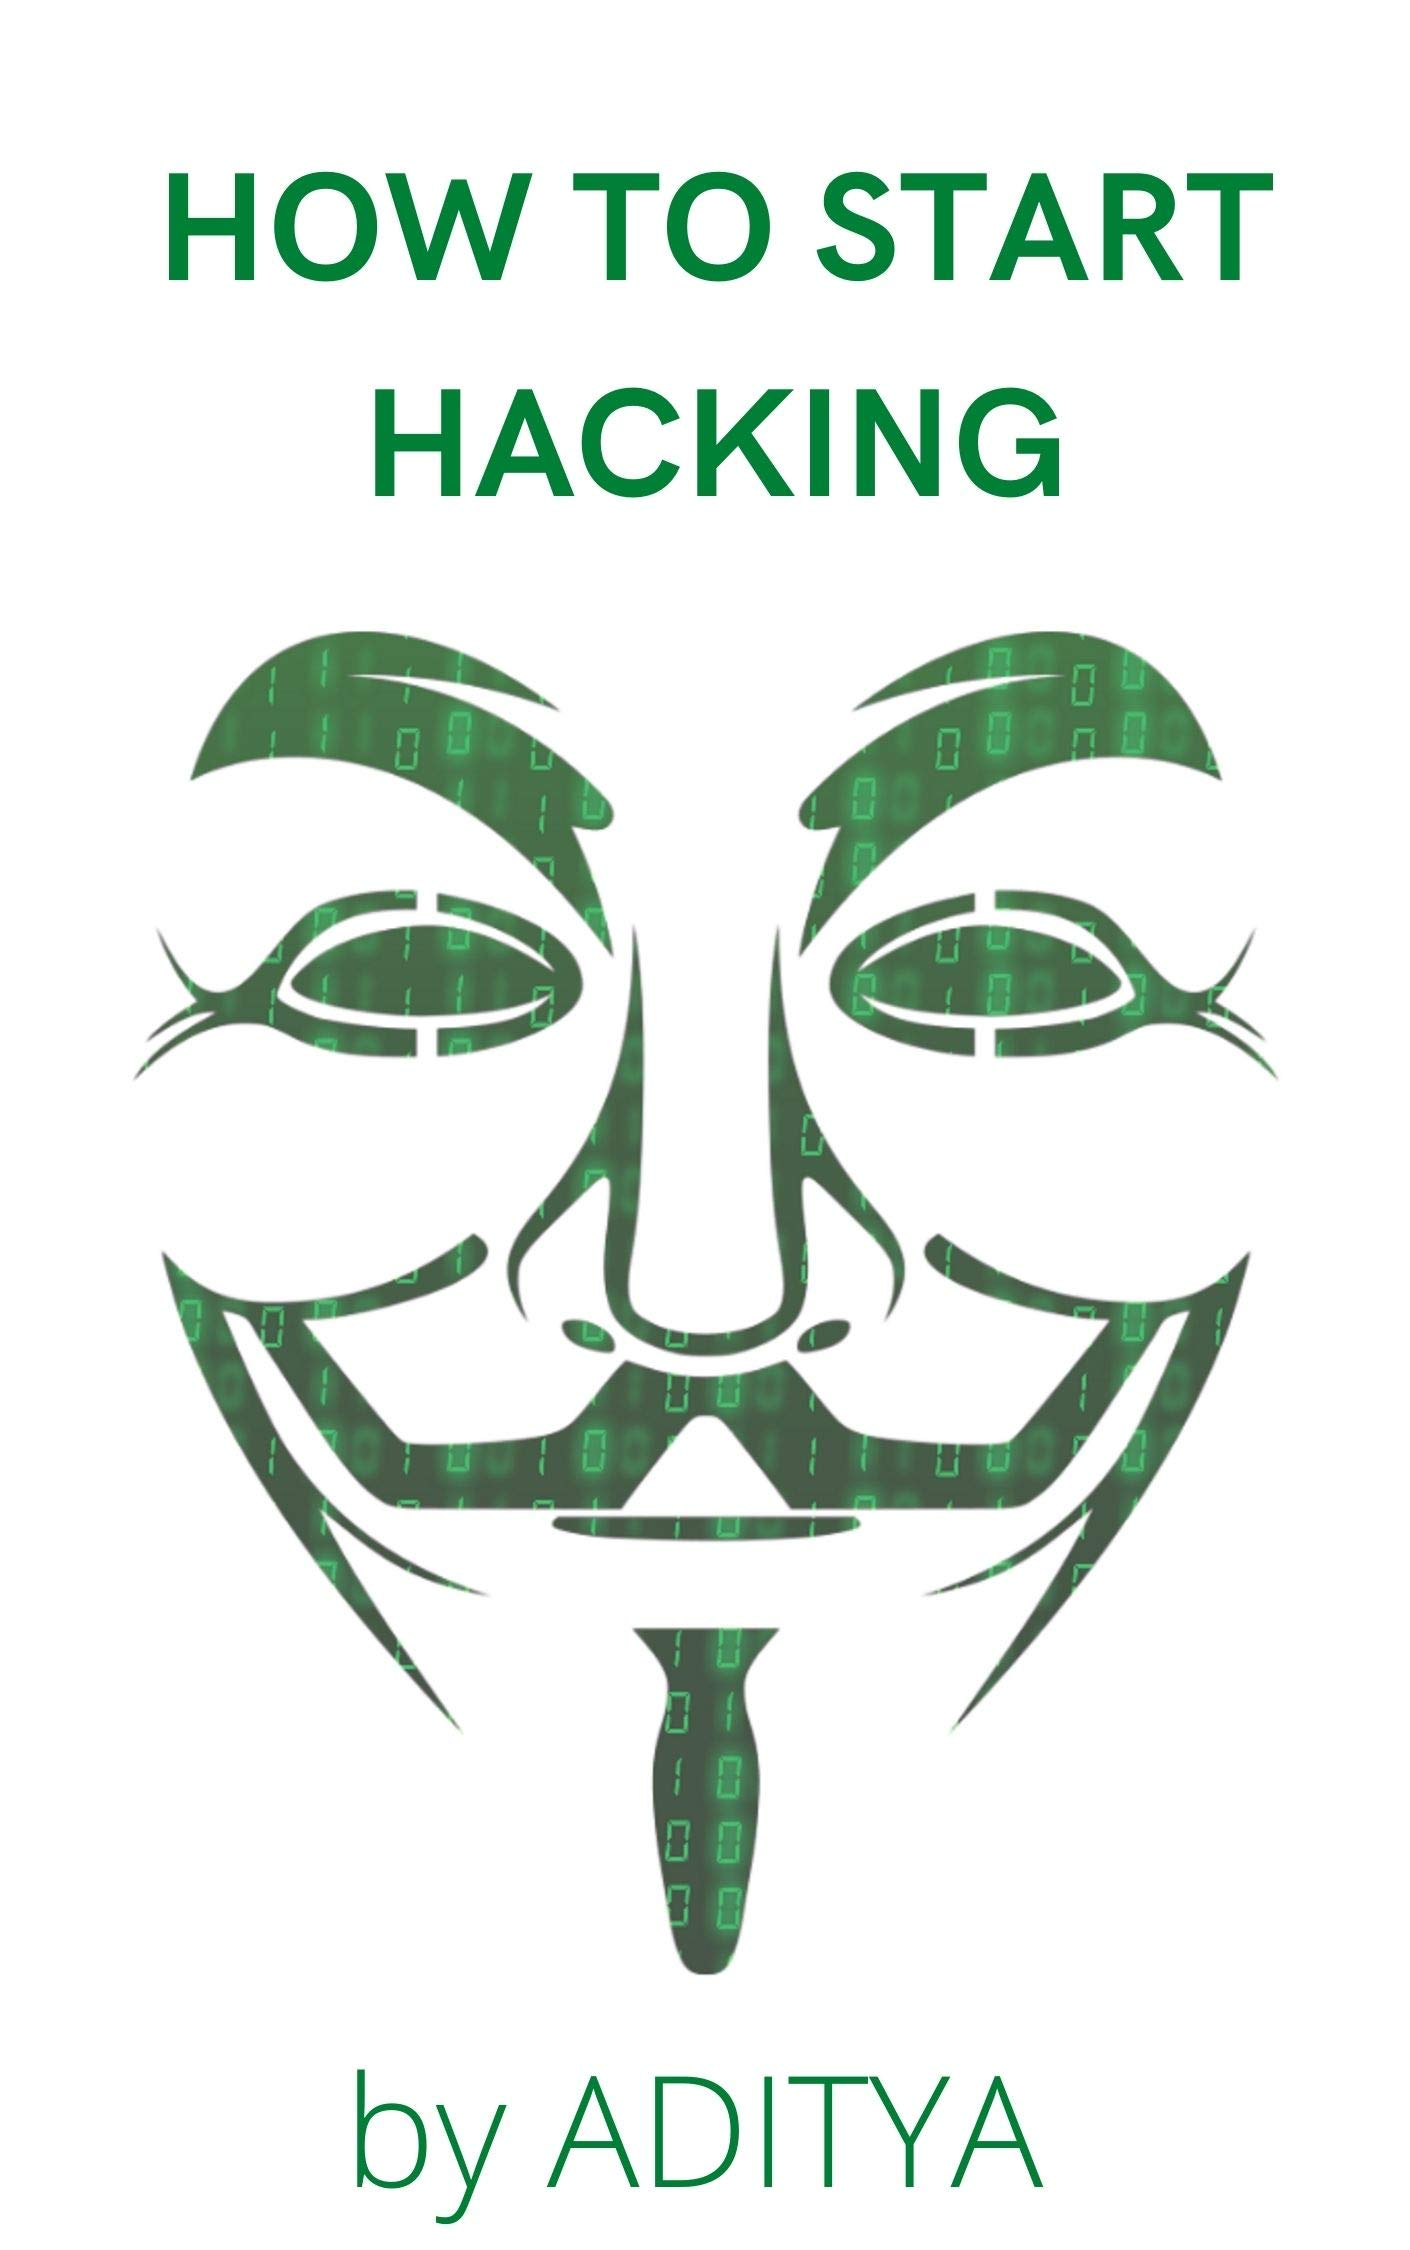 HOW TO START HACKING: adihacks